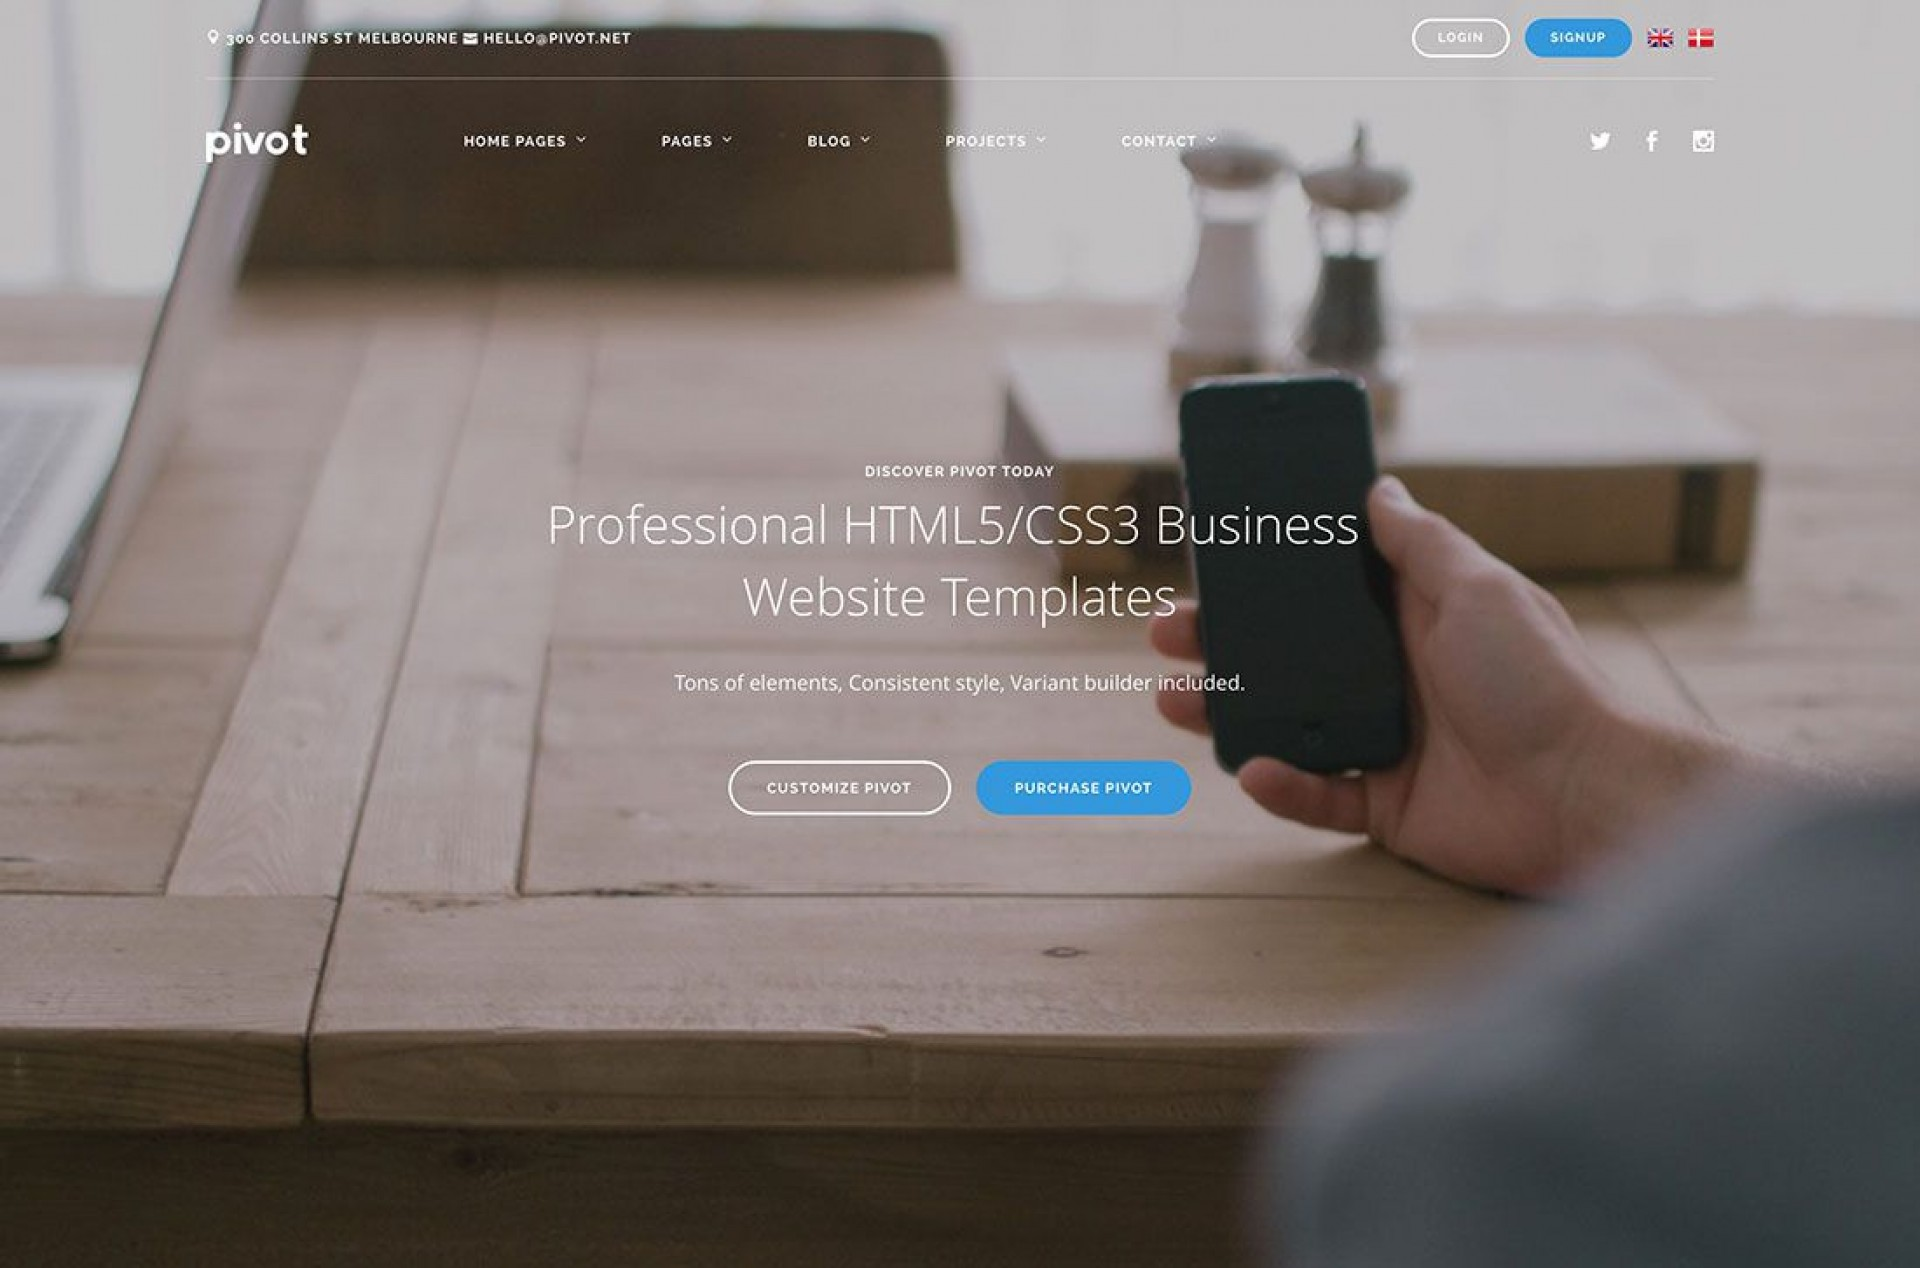 004 Archaicawful Professional Busines Website Template Free Download Wordpres Image  Wordpress1920